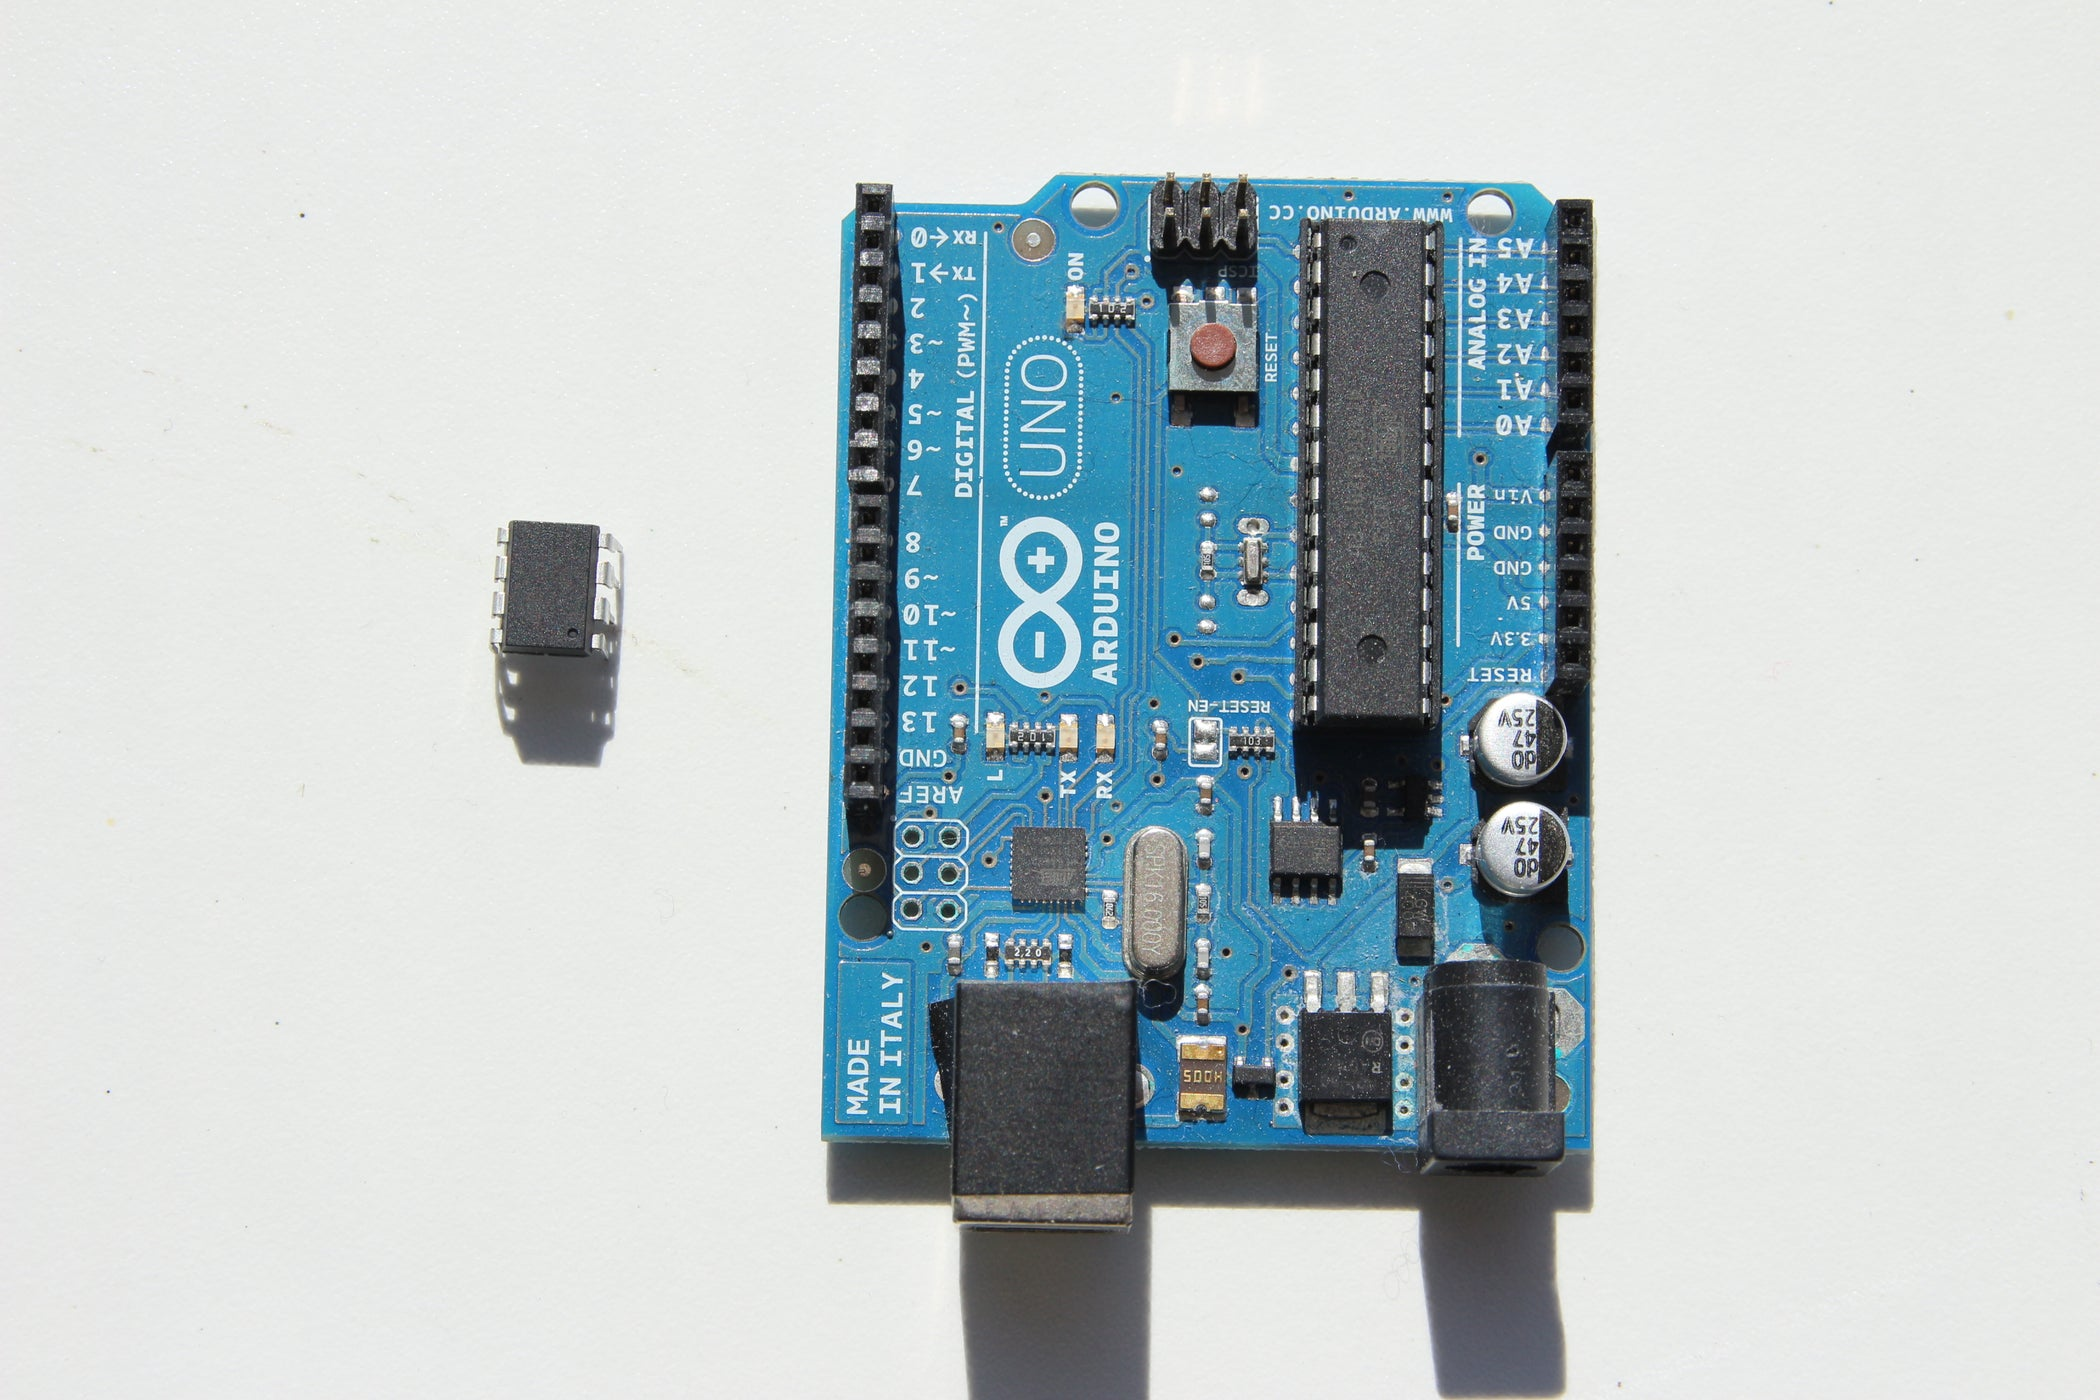 Honey I Shrunk The Arduino Moving From To Attiny And Hardware Is Implemented By Using A Avr Atmega88 Microcontroller Writing Your Code In Pure C 5 Steps